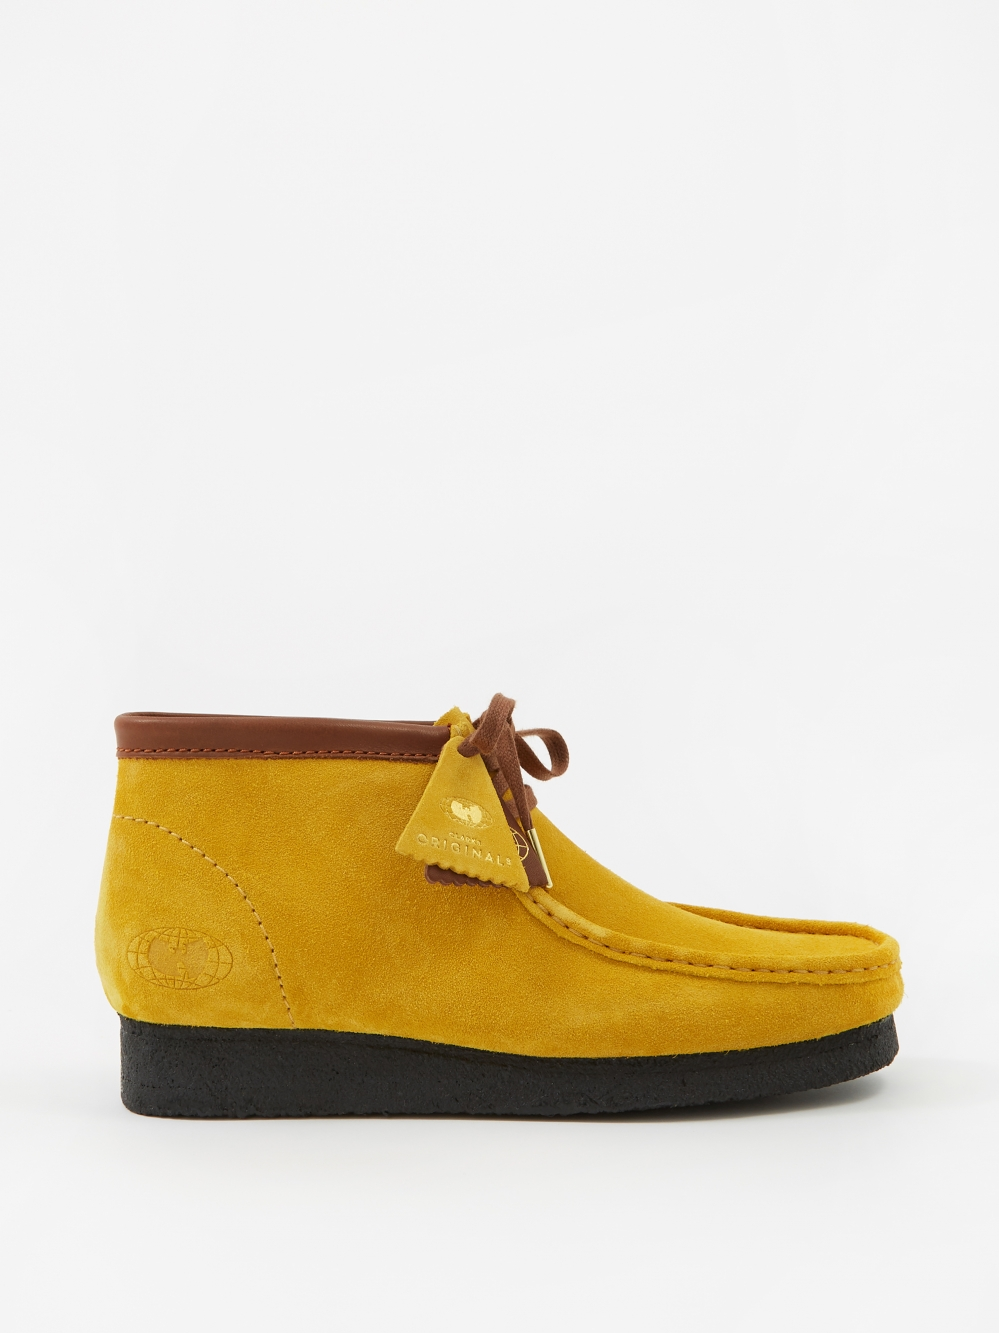 Clarks Originals Clarks x Wu Wear Wallabee - Yellow Suede (Image 1)